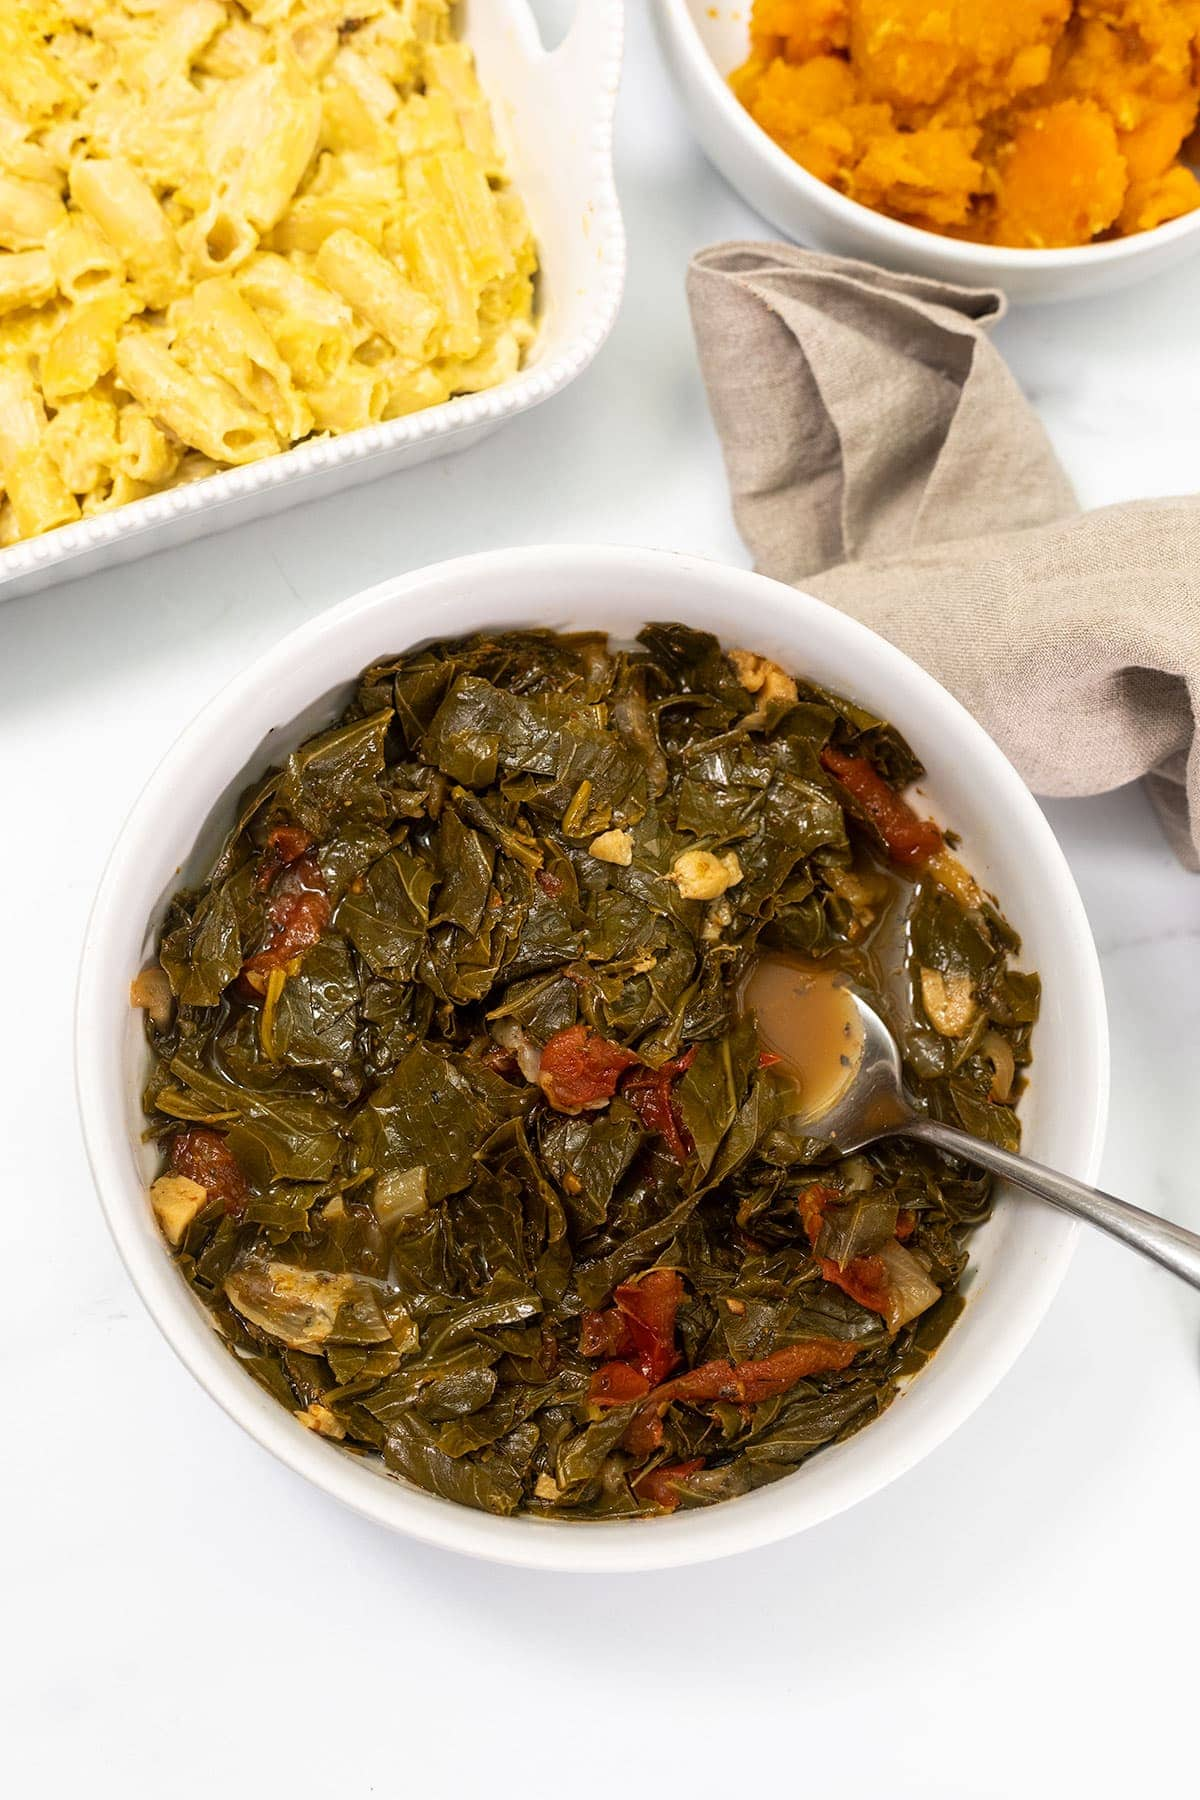 overlay of collard greens in a white bowl on a white background with mac and cheese in the background and candied yams